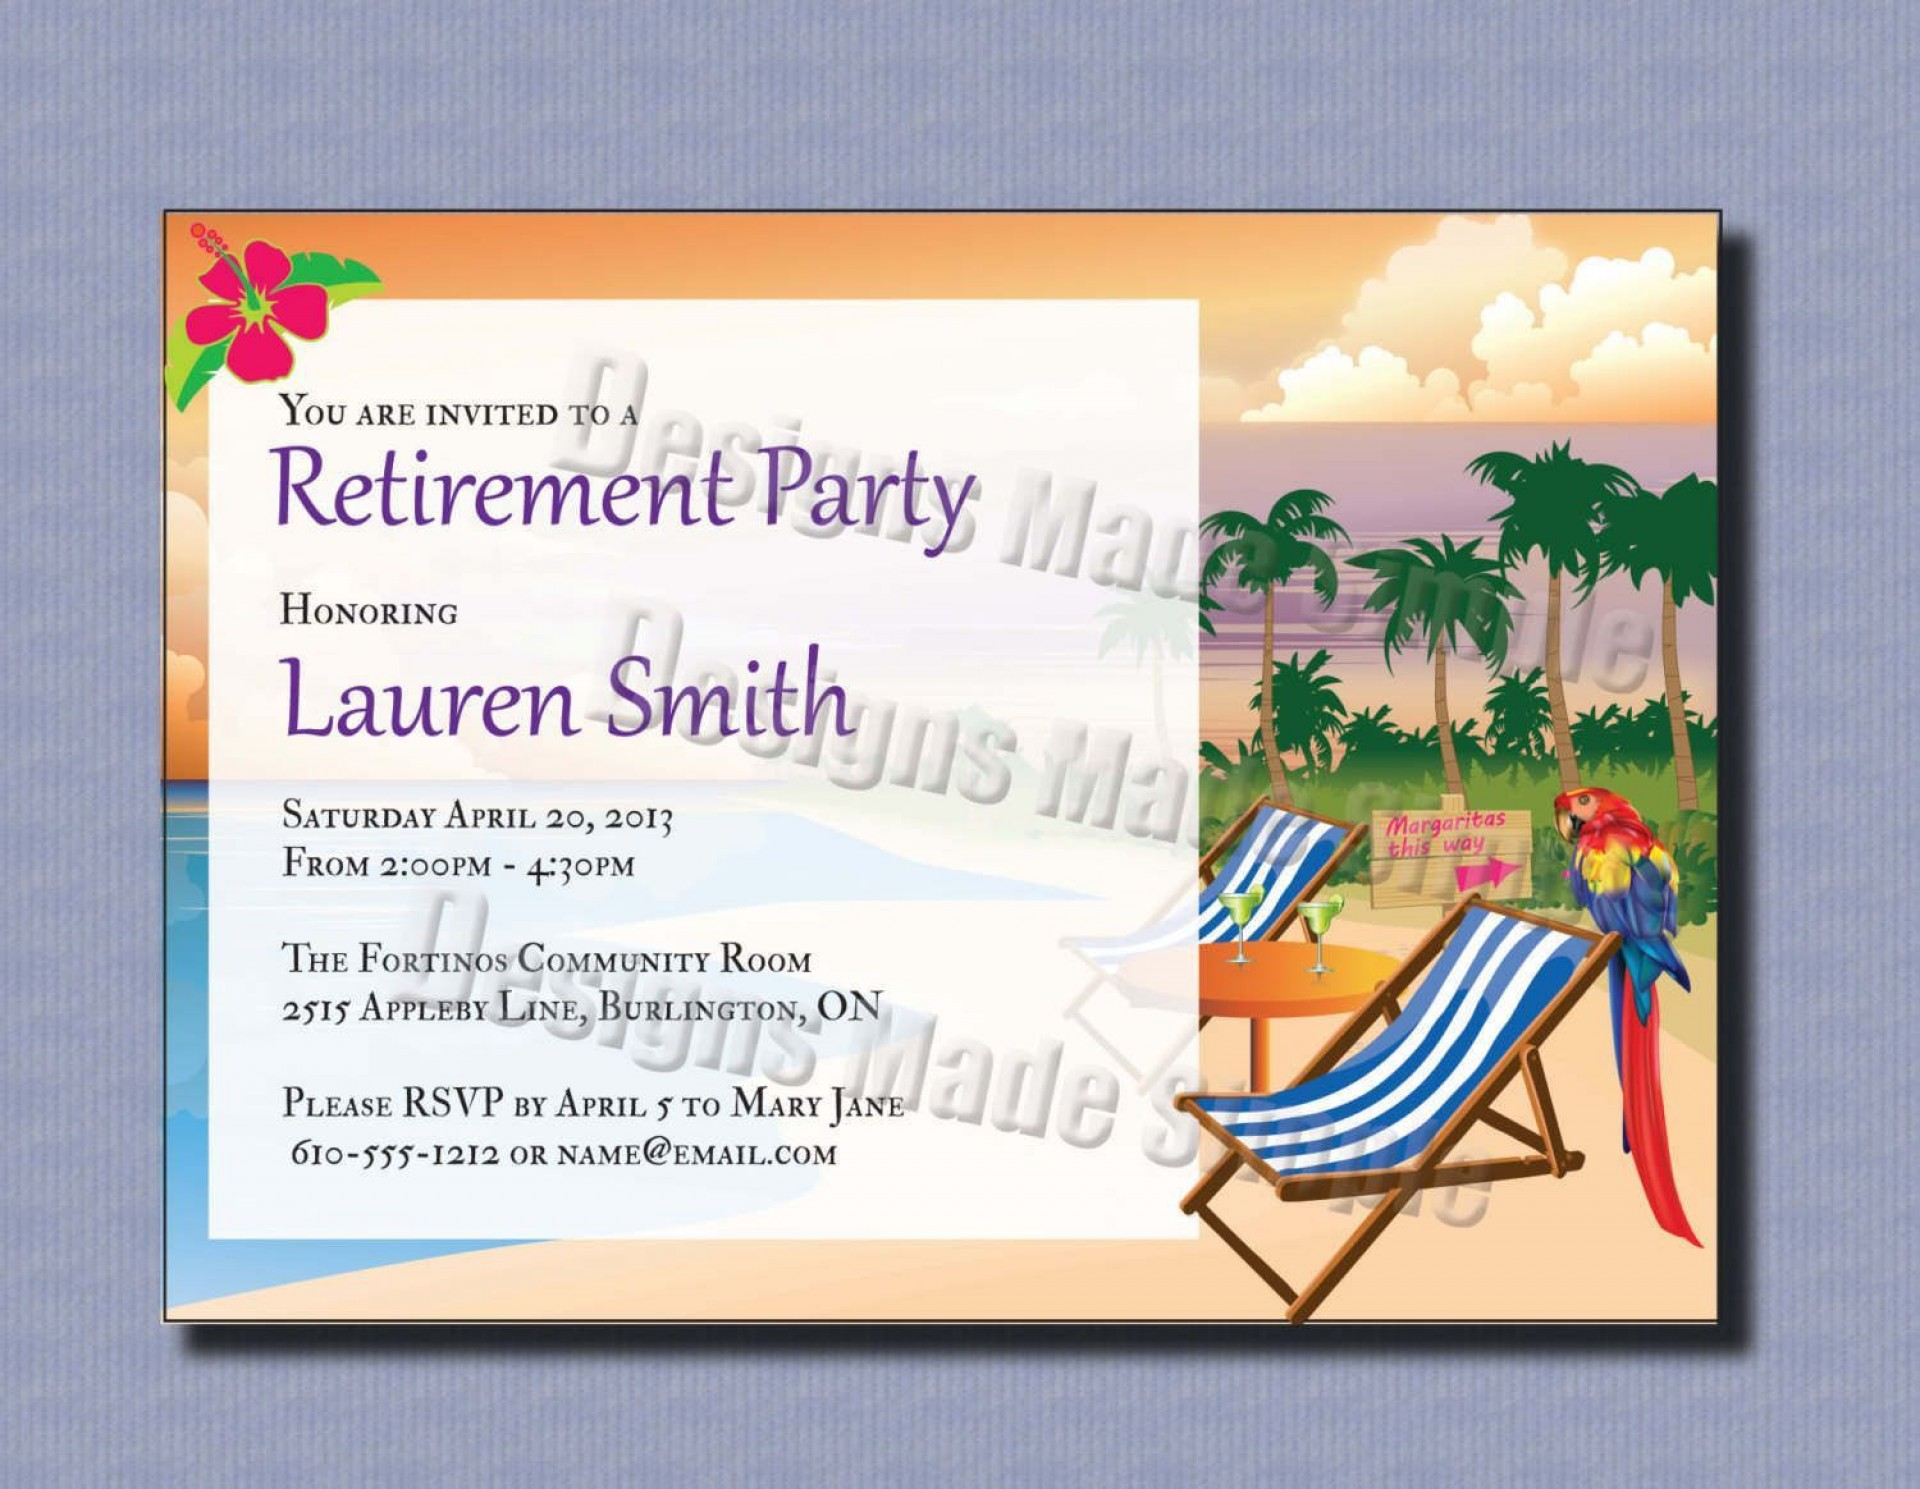 000 Awful Retirement Party Invite Template Word Free Photo 1920